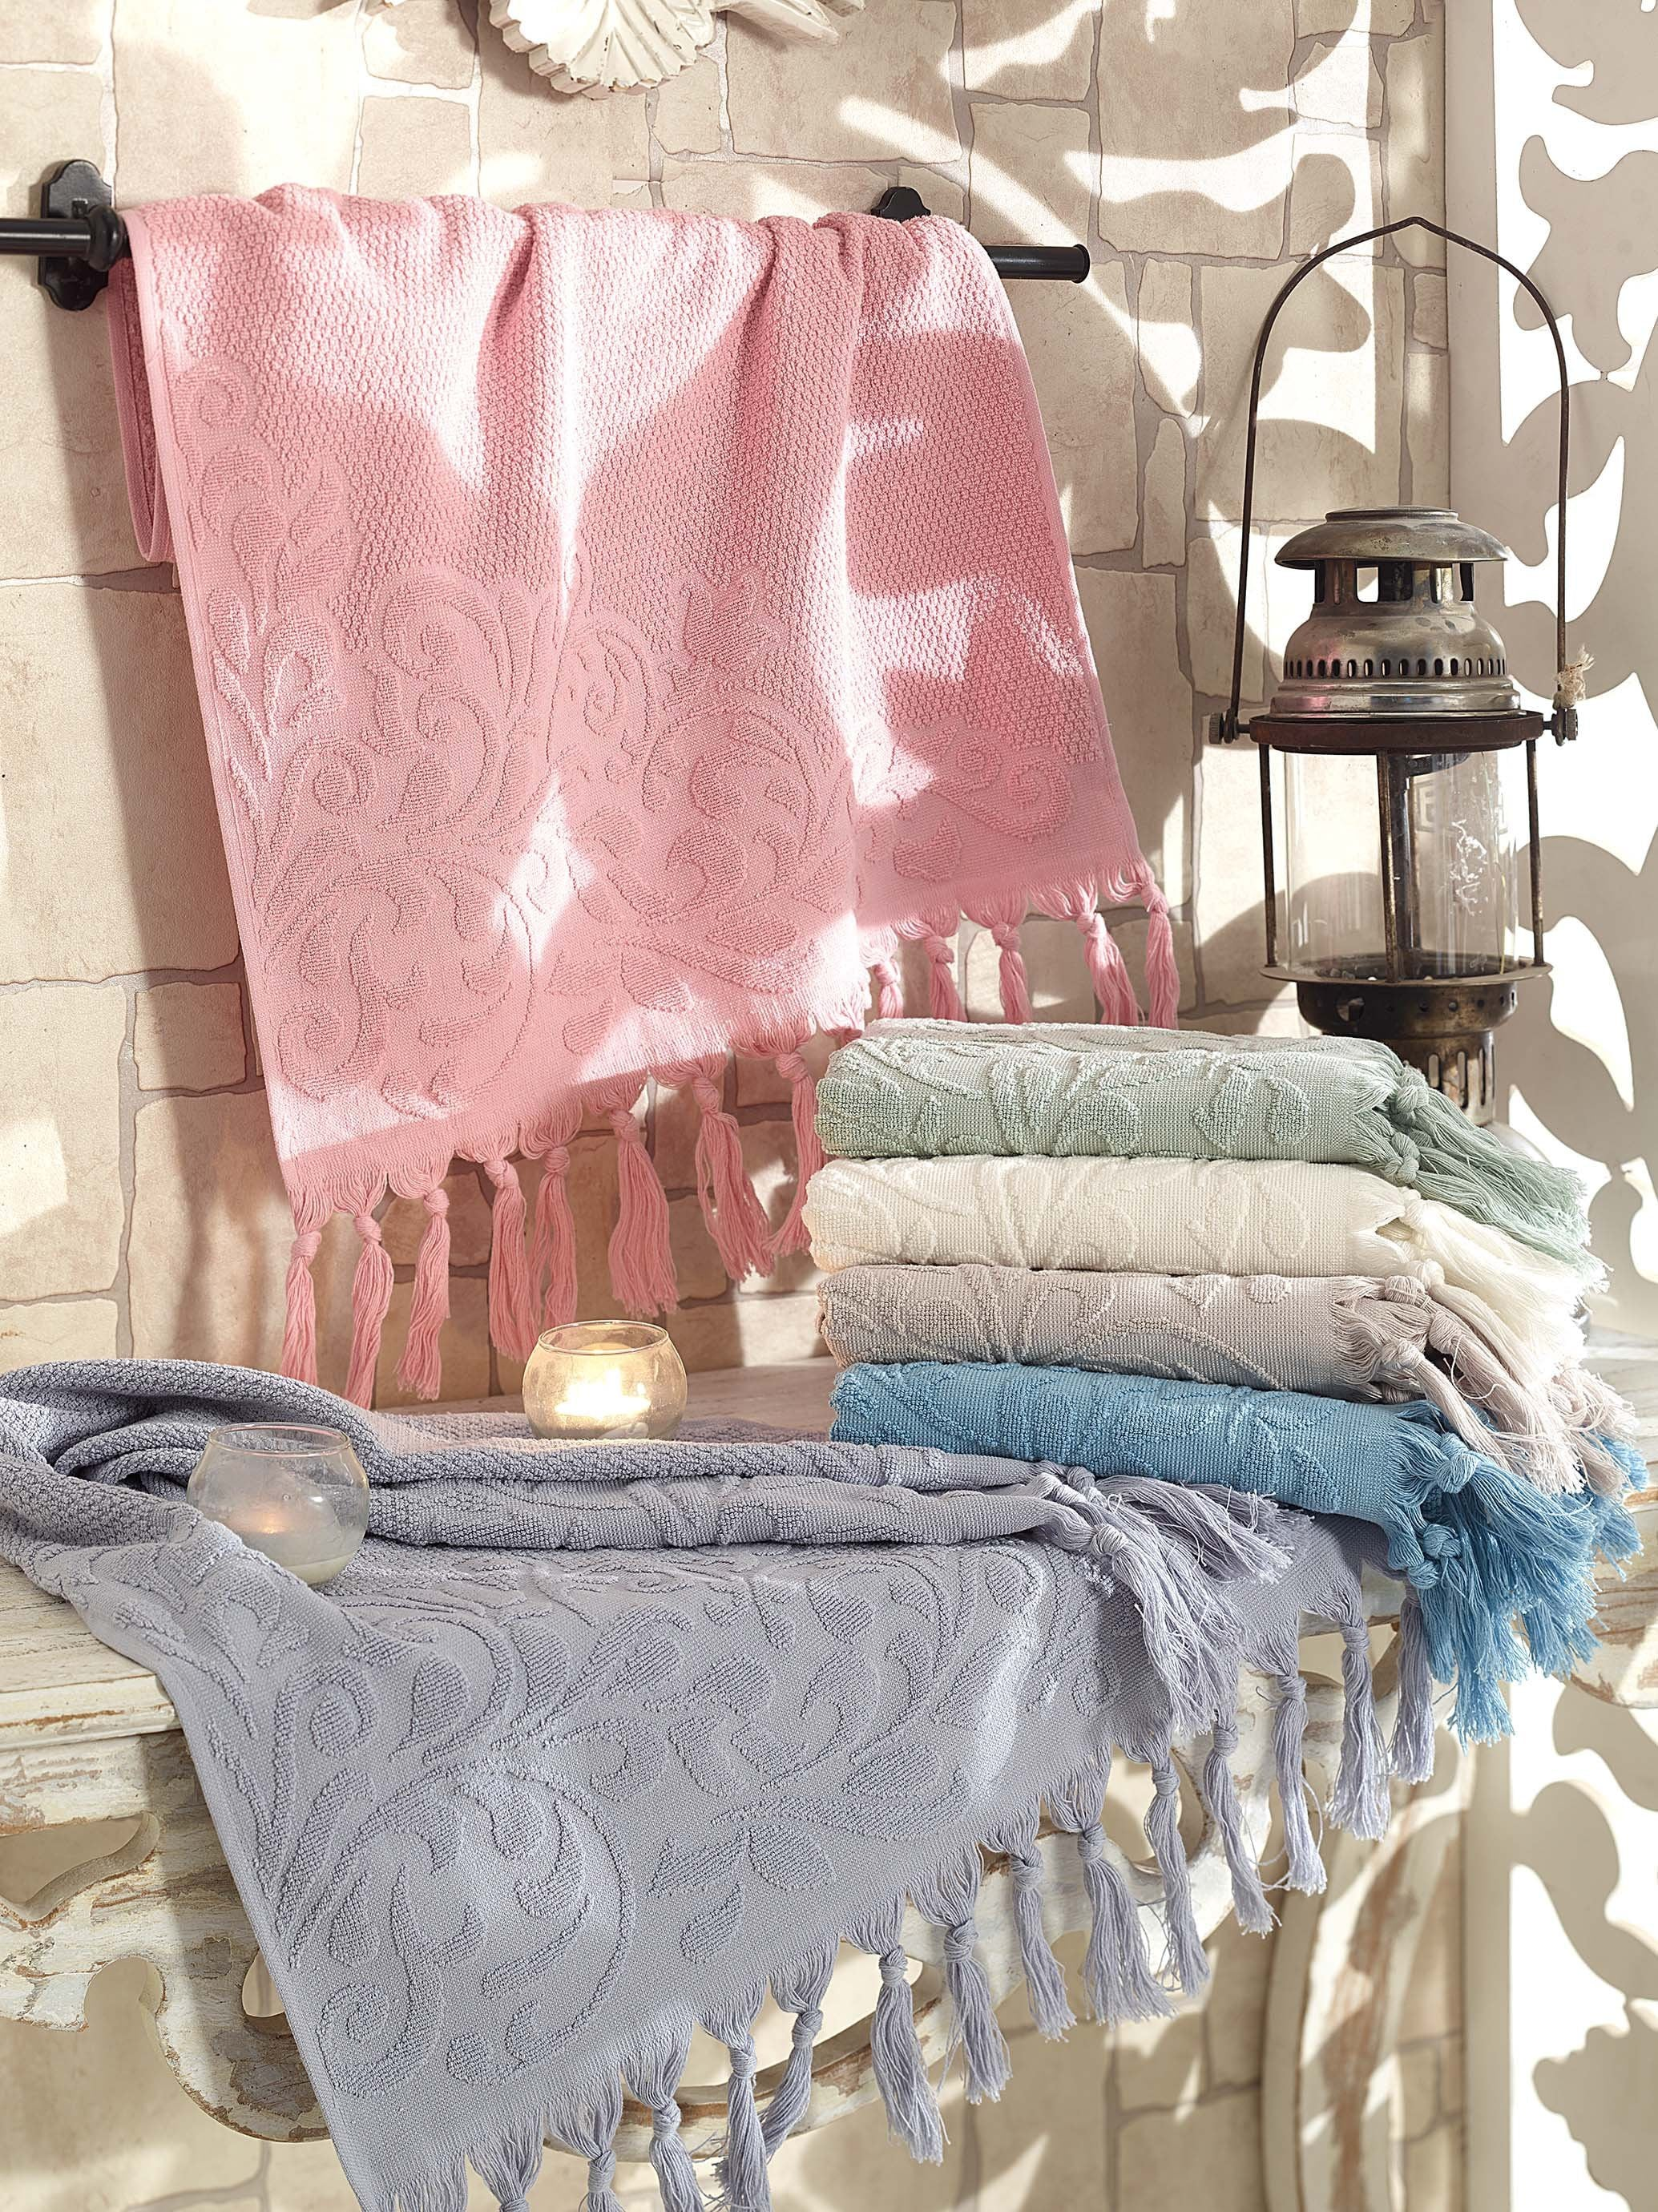 JACQUARD COTTON HIGH QUALITY TURKISH MADE TOWEL IN 6 COLORS - COTTONISH